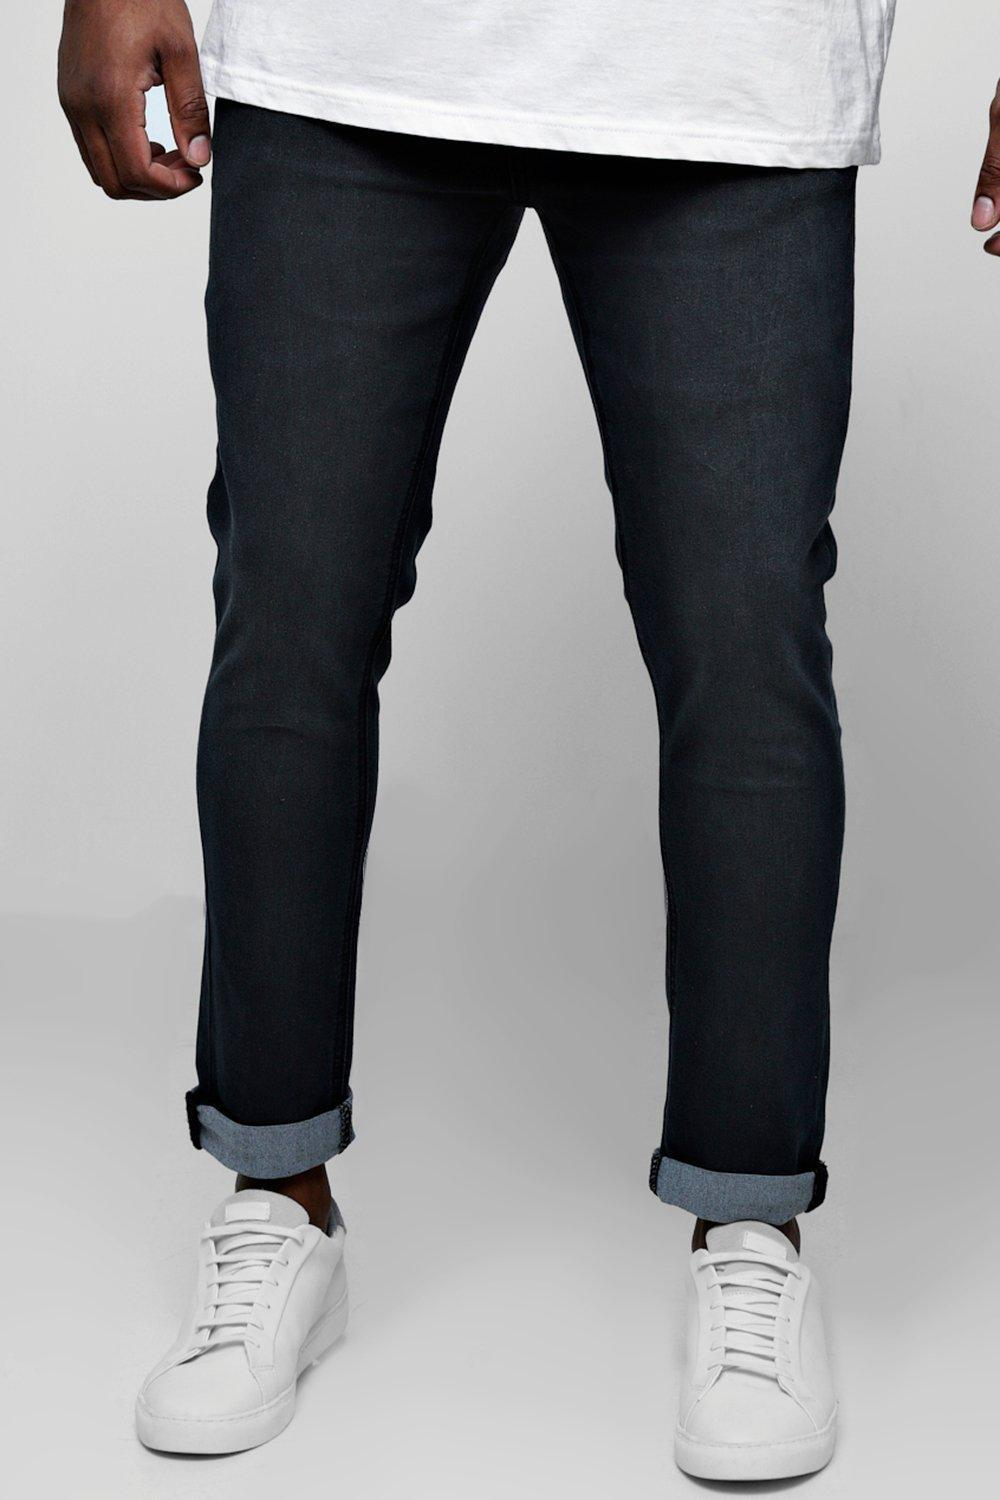 b547ac49fd30 Lyst - Boohoo Big And Tall Skinny Fit Jeans With Turn Up for Men